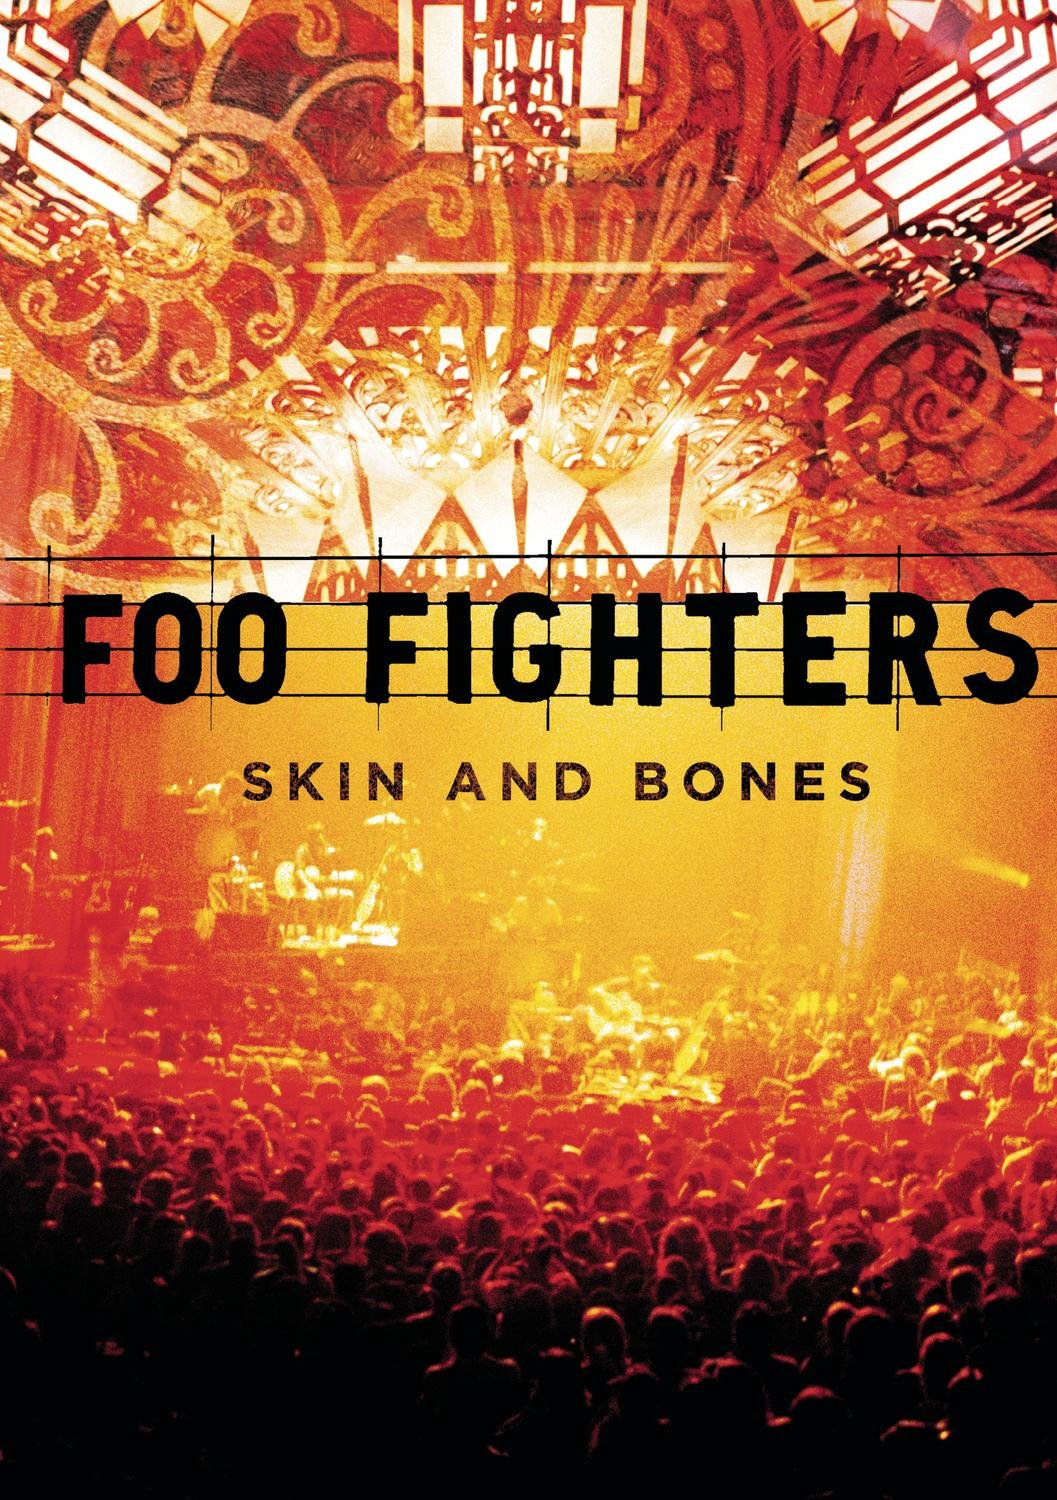 DVD : Foo Fighters - Skin and Bones (DVD)